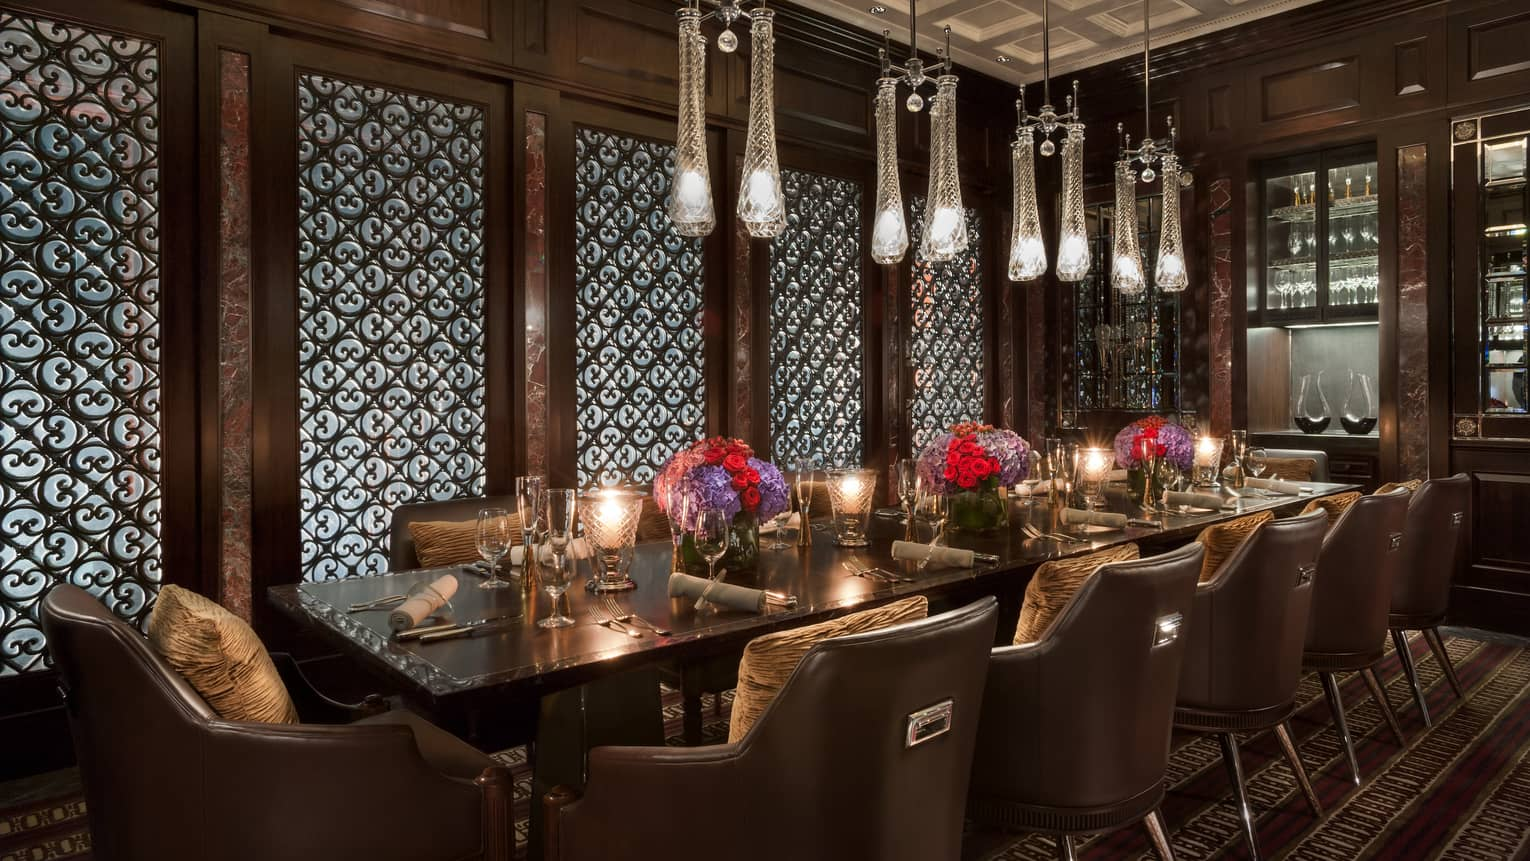 Long dining table in front of decorative wood screen wall, under long crystal lights